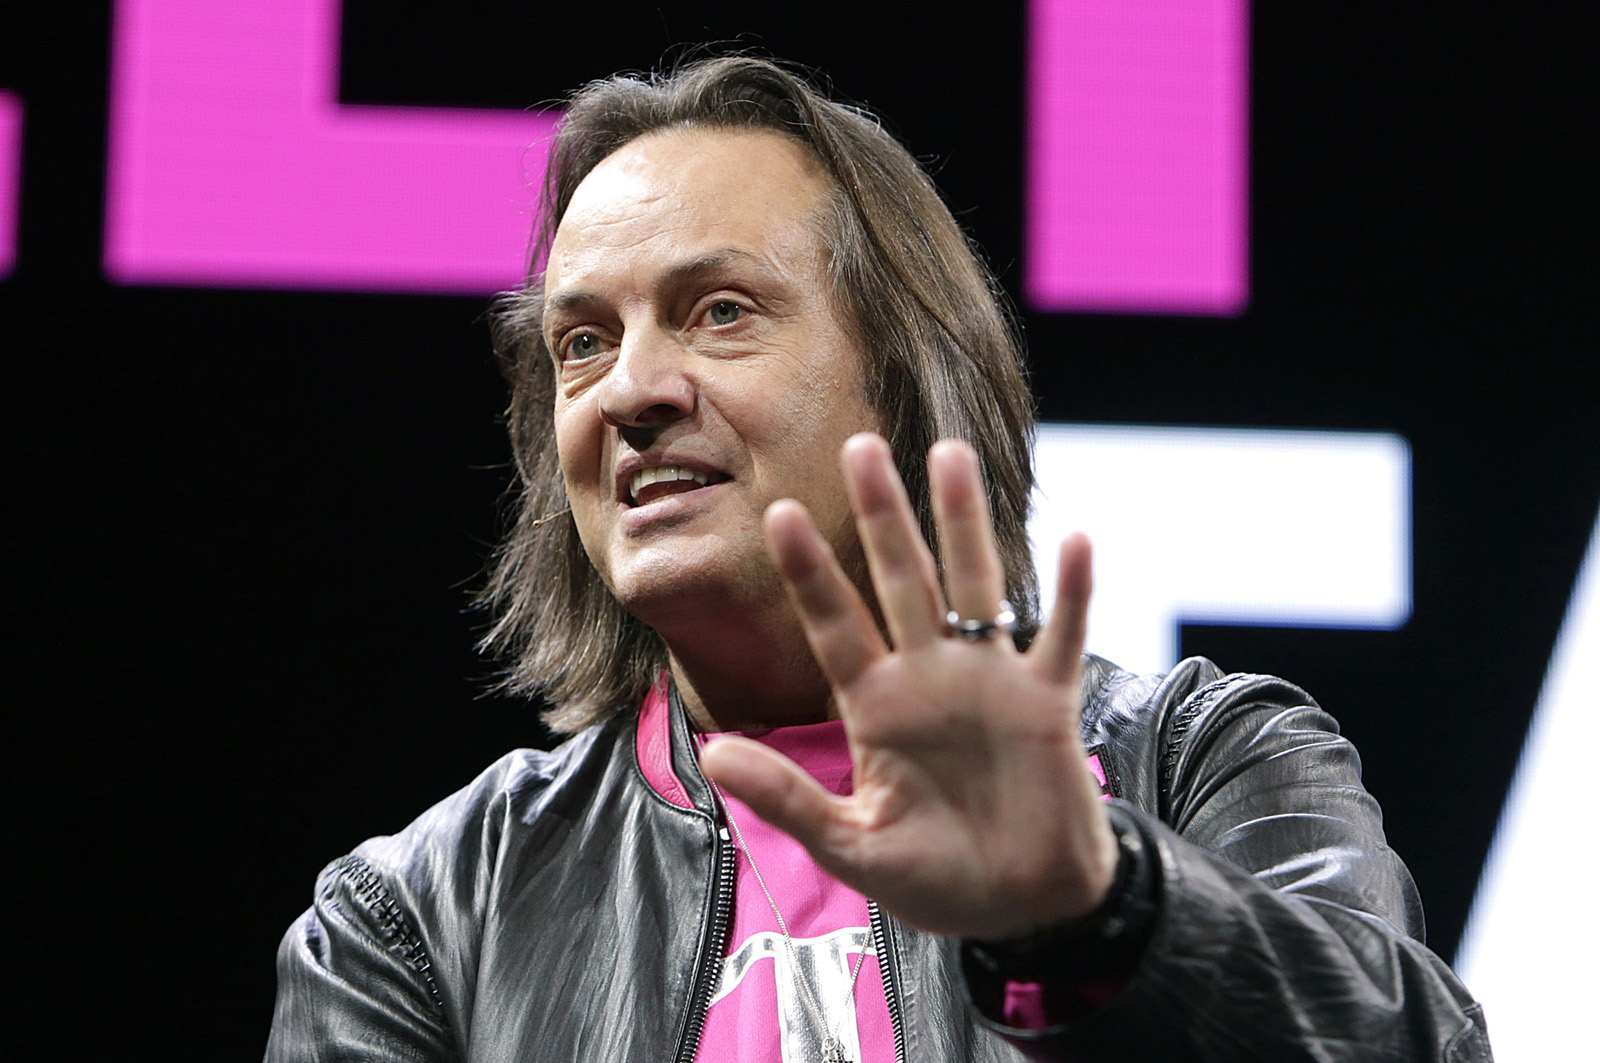 T-Mobile Moves to Simplify its Phone Billing by Offering a Single 'Unlimited' Plan